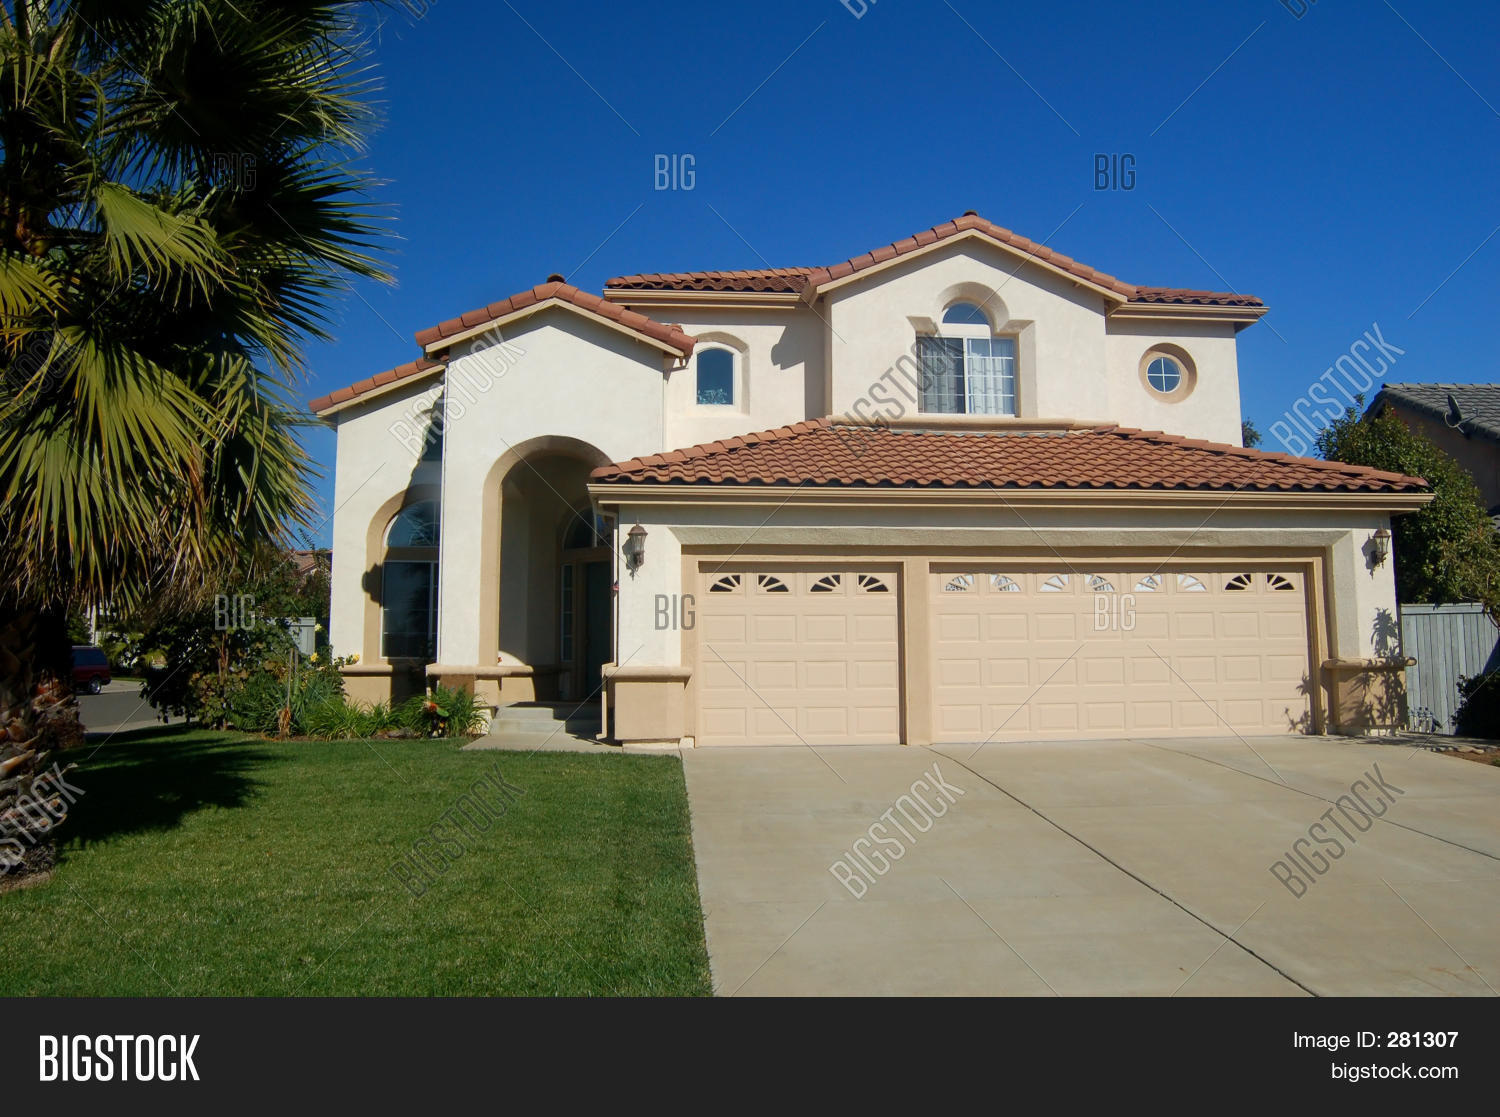 Nice house california image photo bigstock for Nice home image